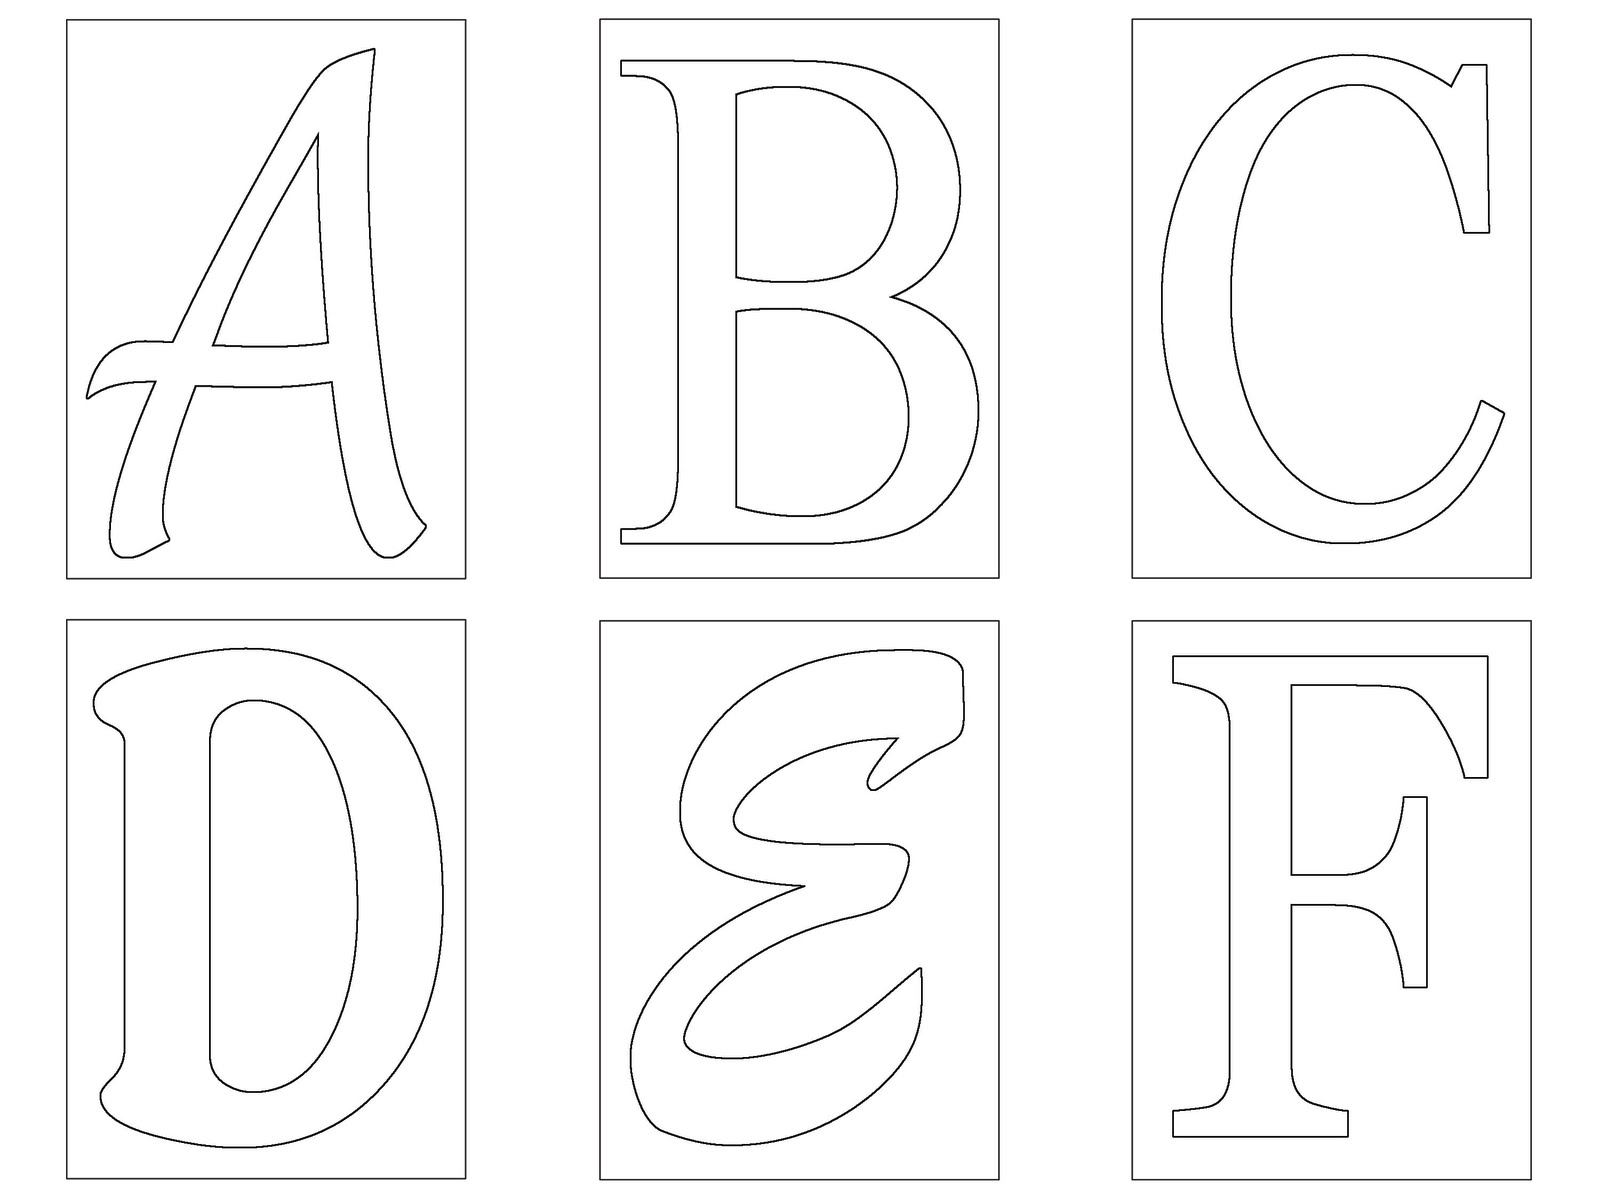 Gratifying image throughout printable cutout letters